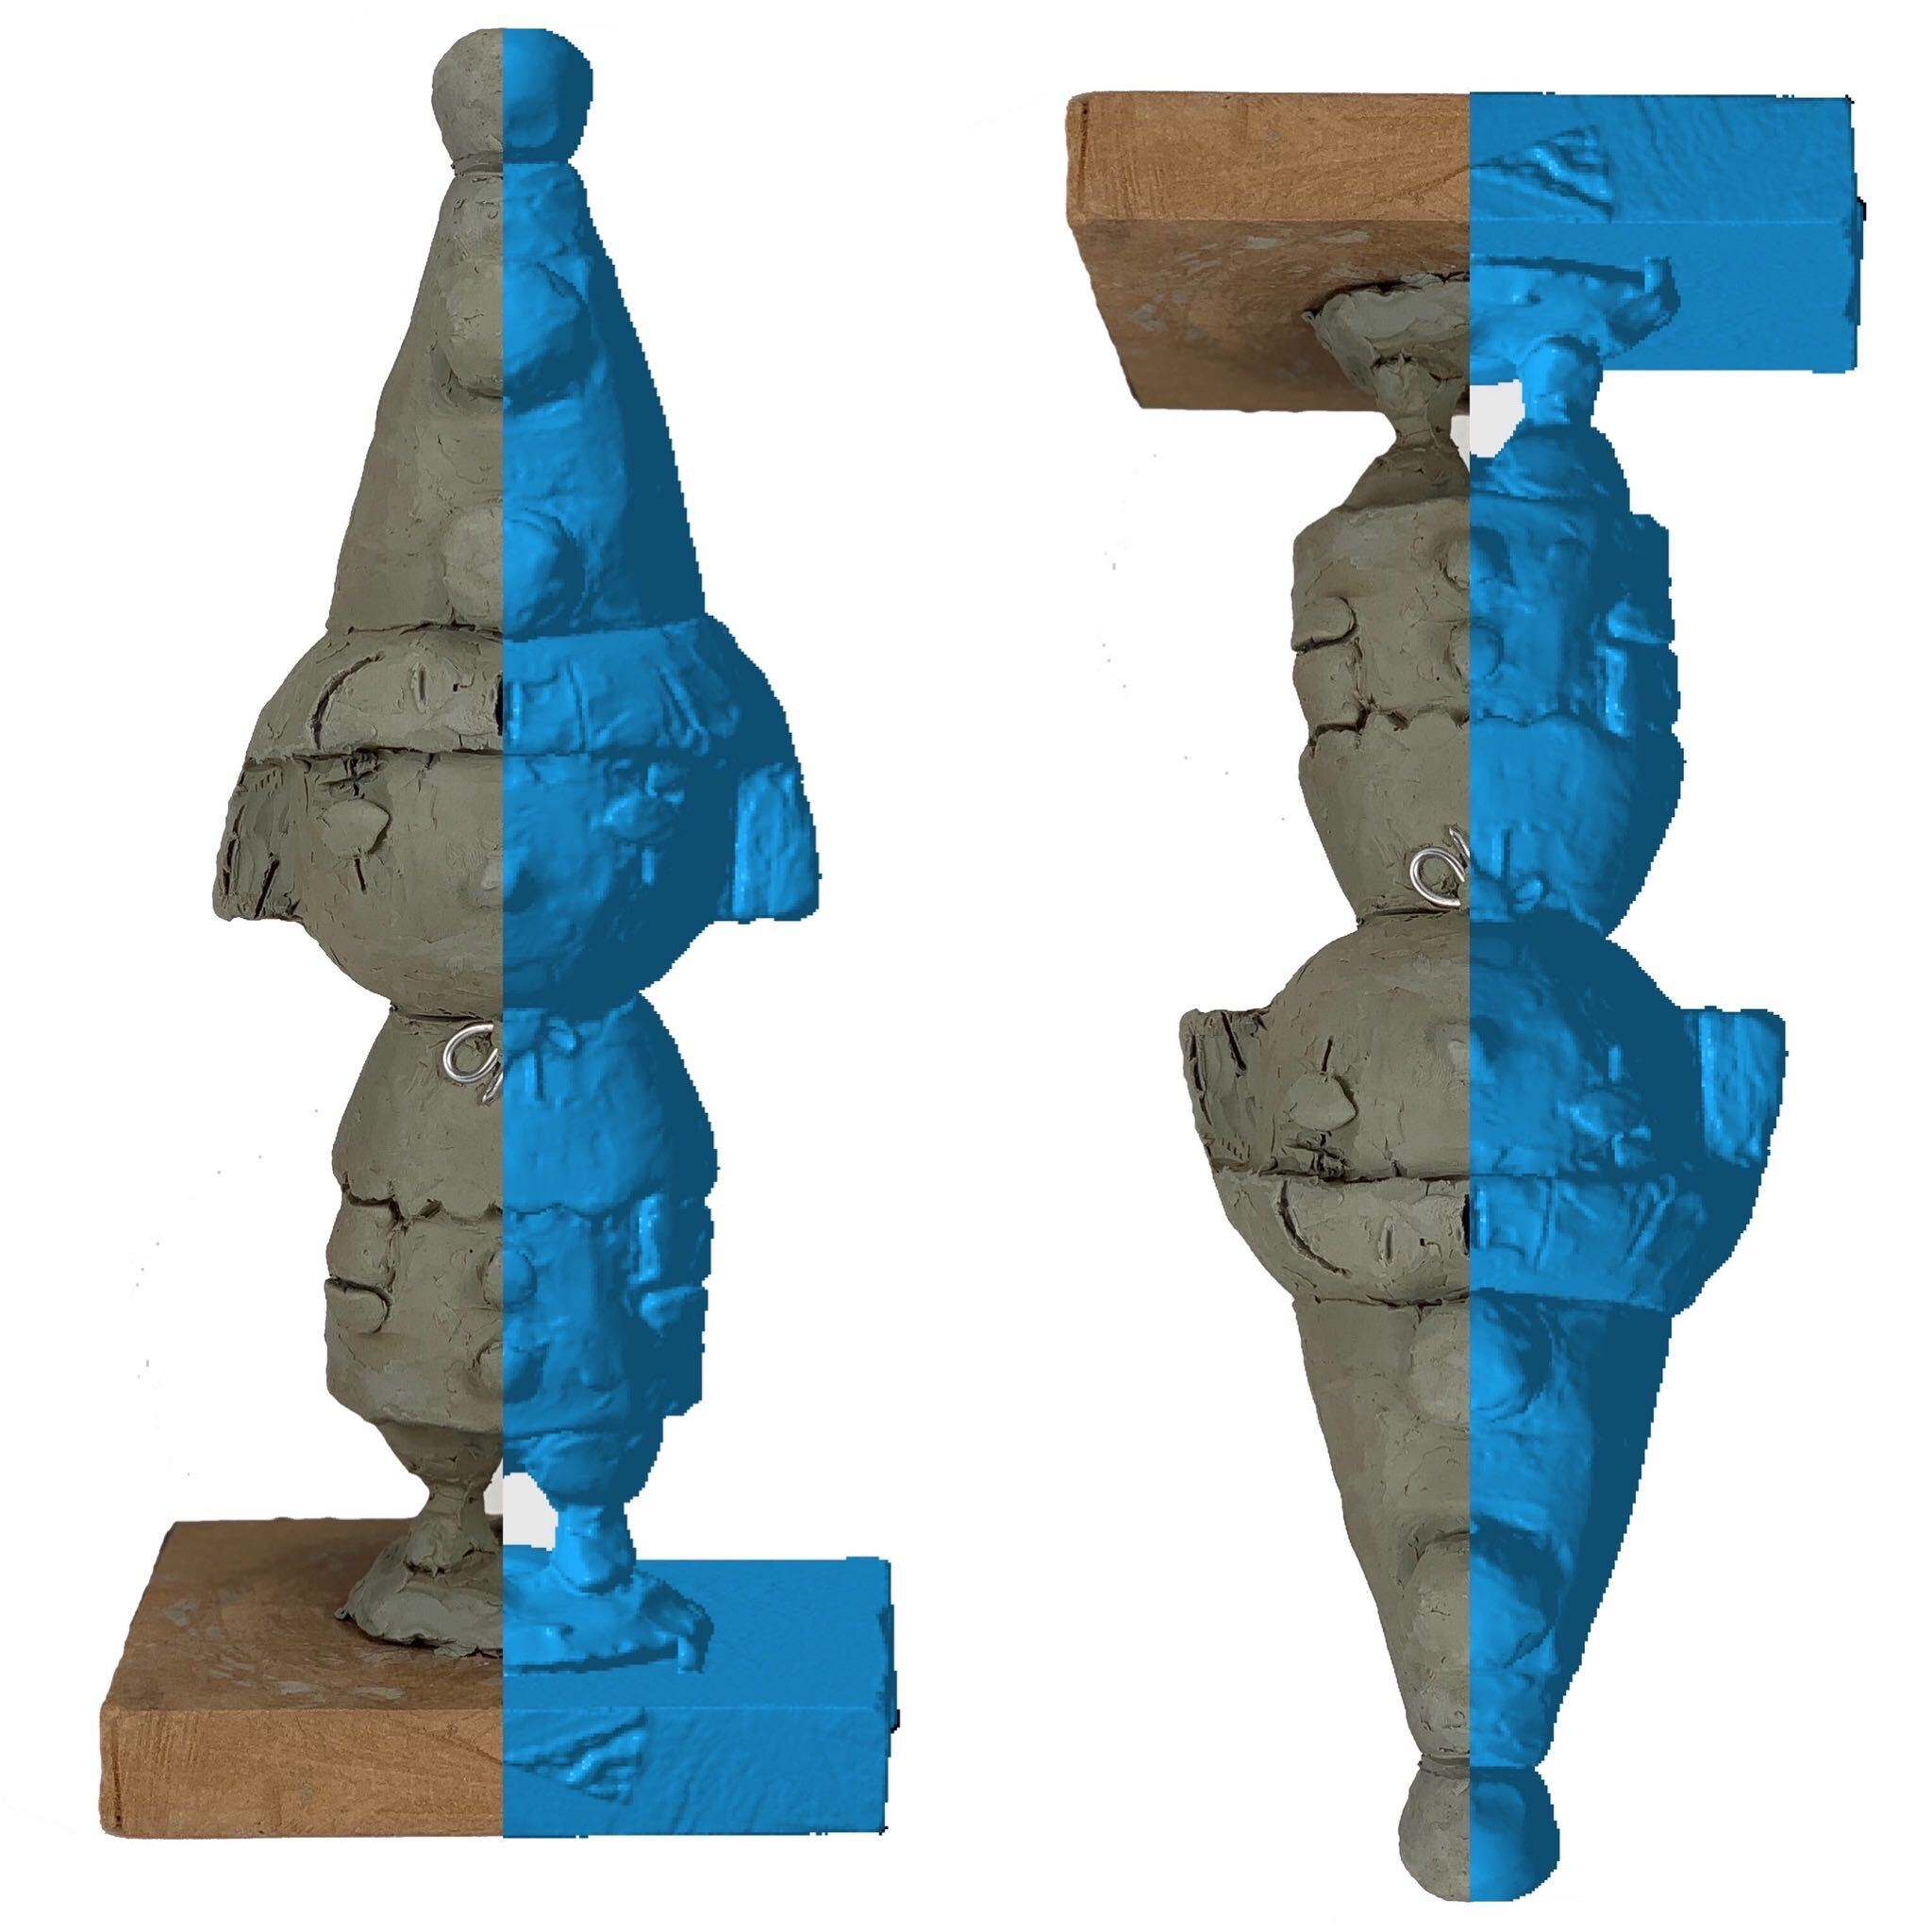 3d scan a clay sculpture to produce an accurate digital 3d model in STL file format